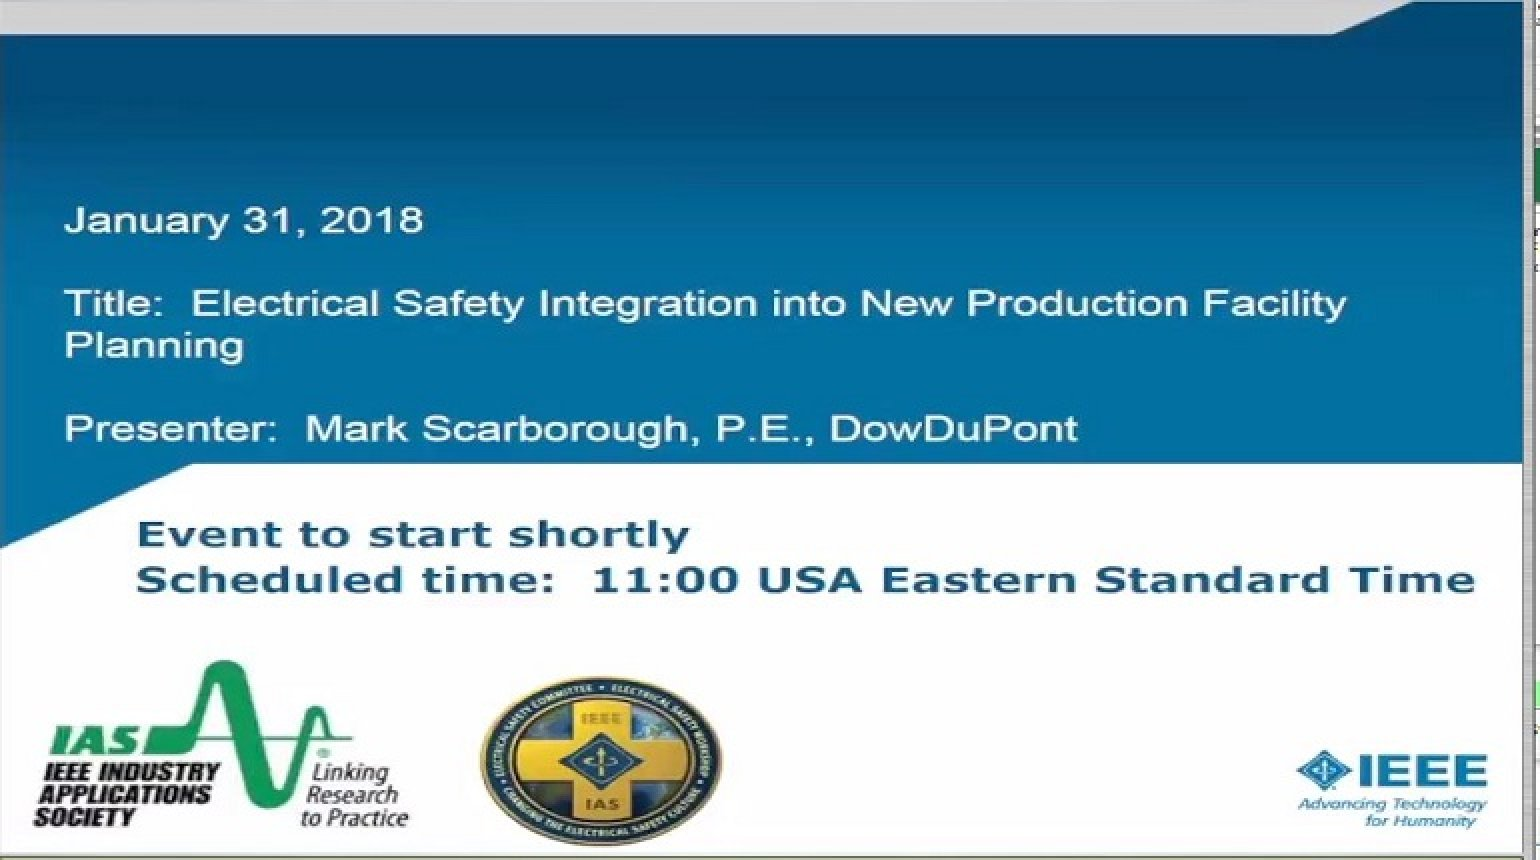 IAS Webinar Series - Electrical Safety Integration into New Production Facility Planning